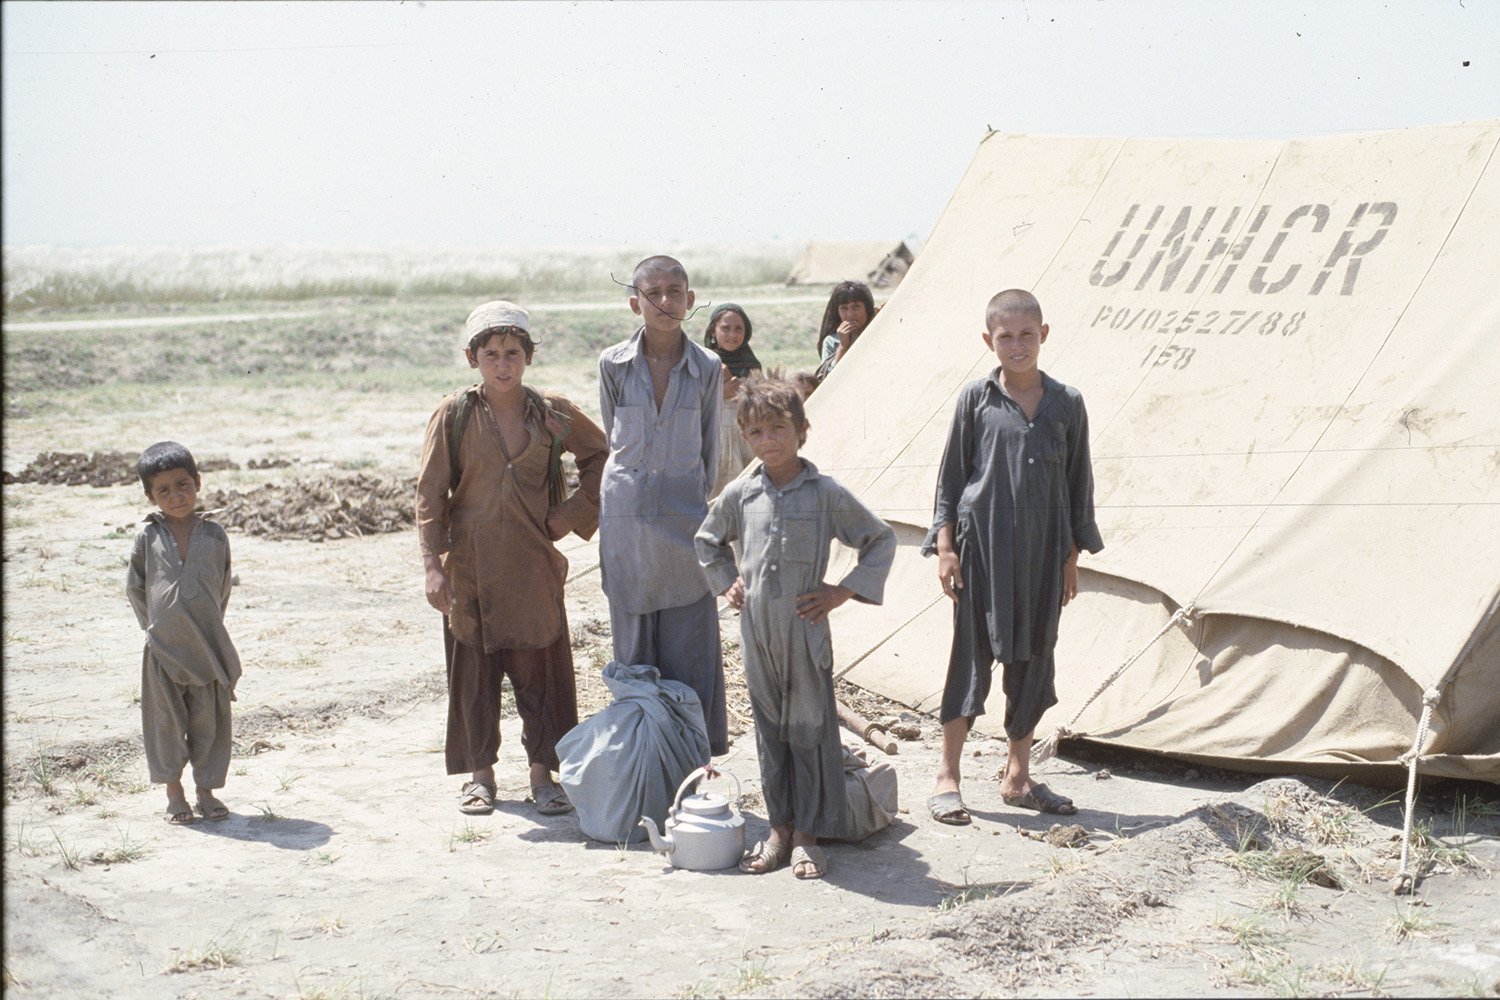 A group of young Afghan boys stand outisde a tent supplied by the Office of the United Nations High Commissioner for Refugees at a camp in Pakistan on Jan. 1, 1989.